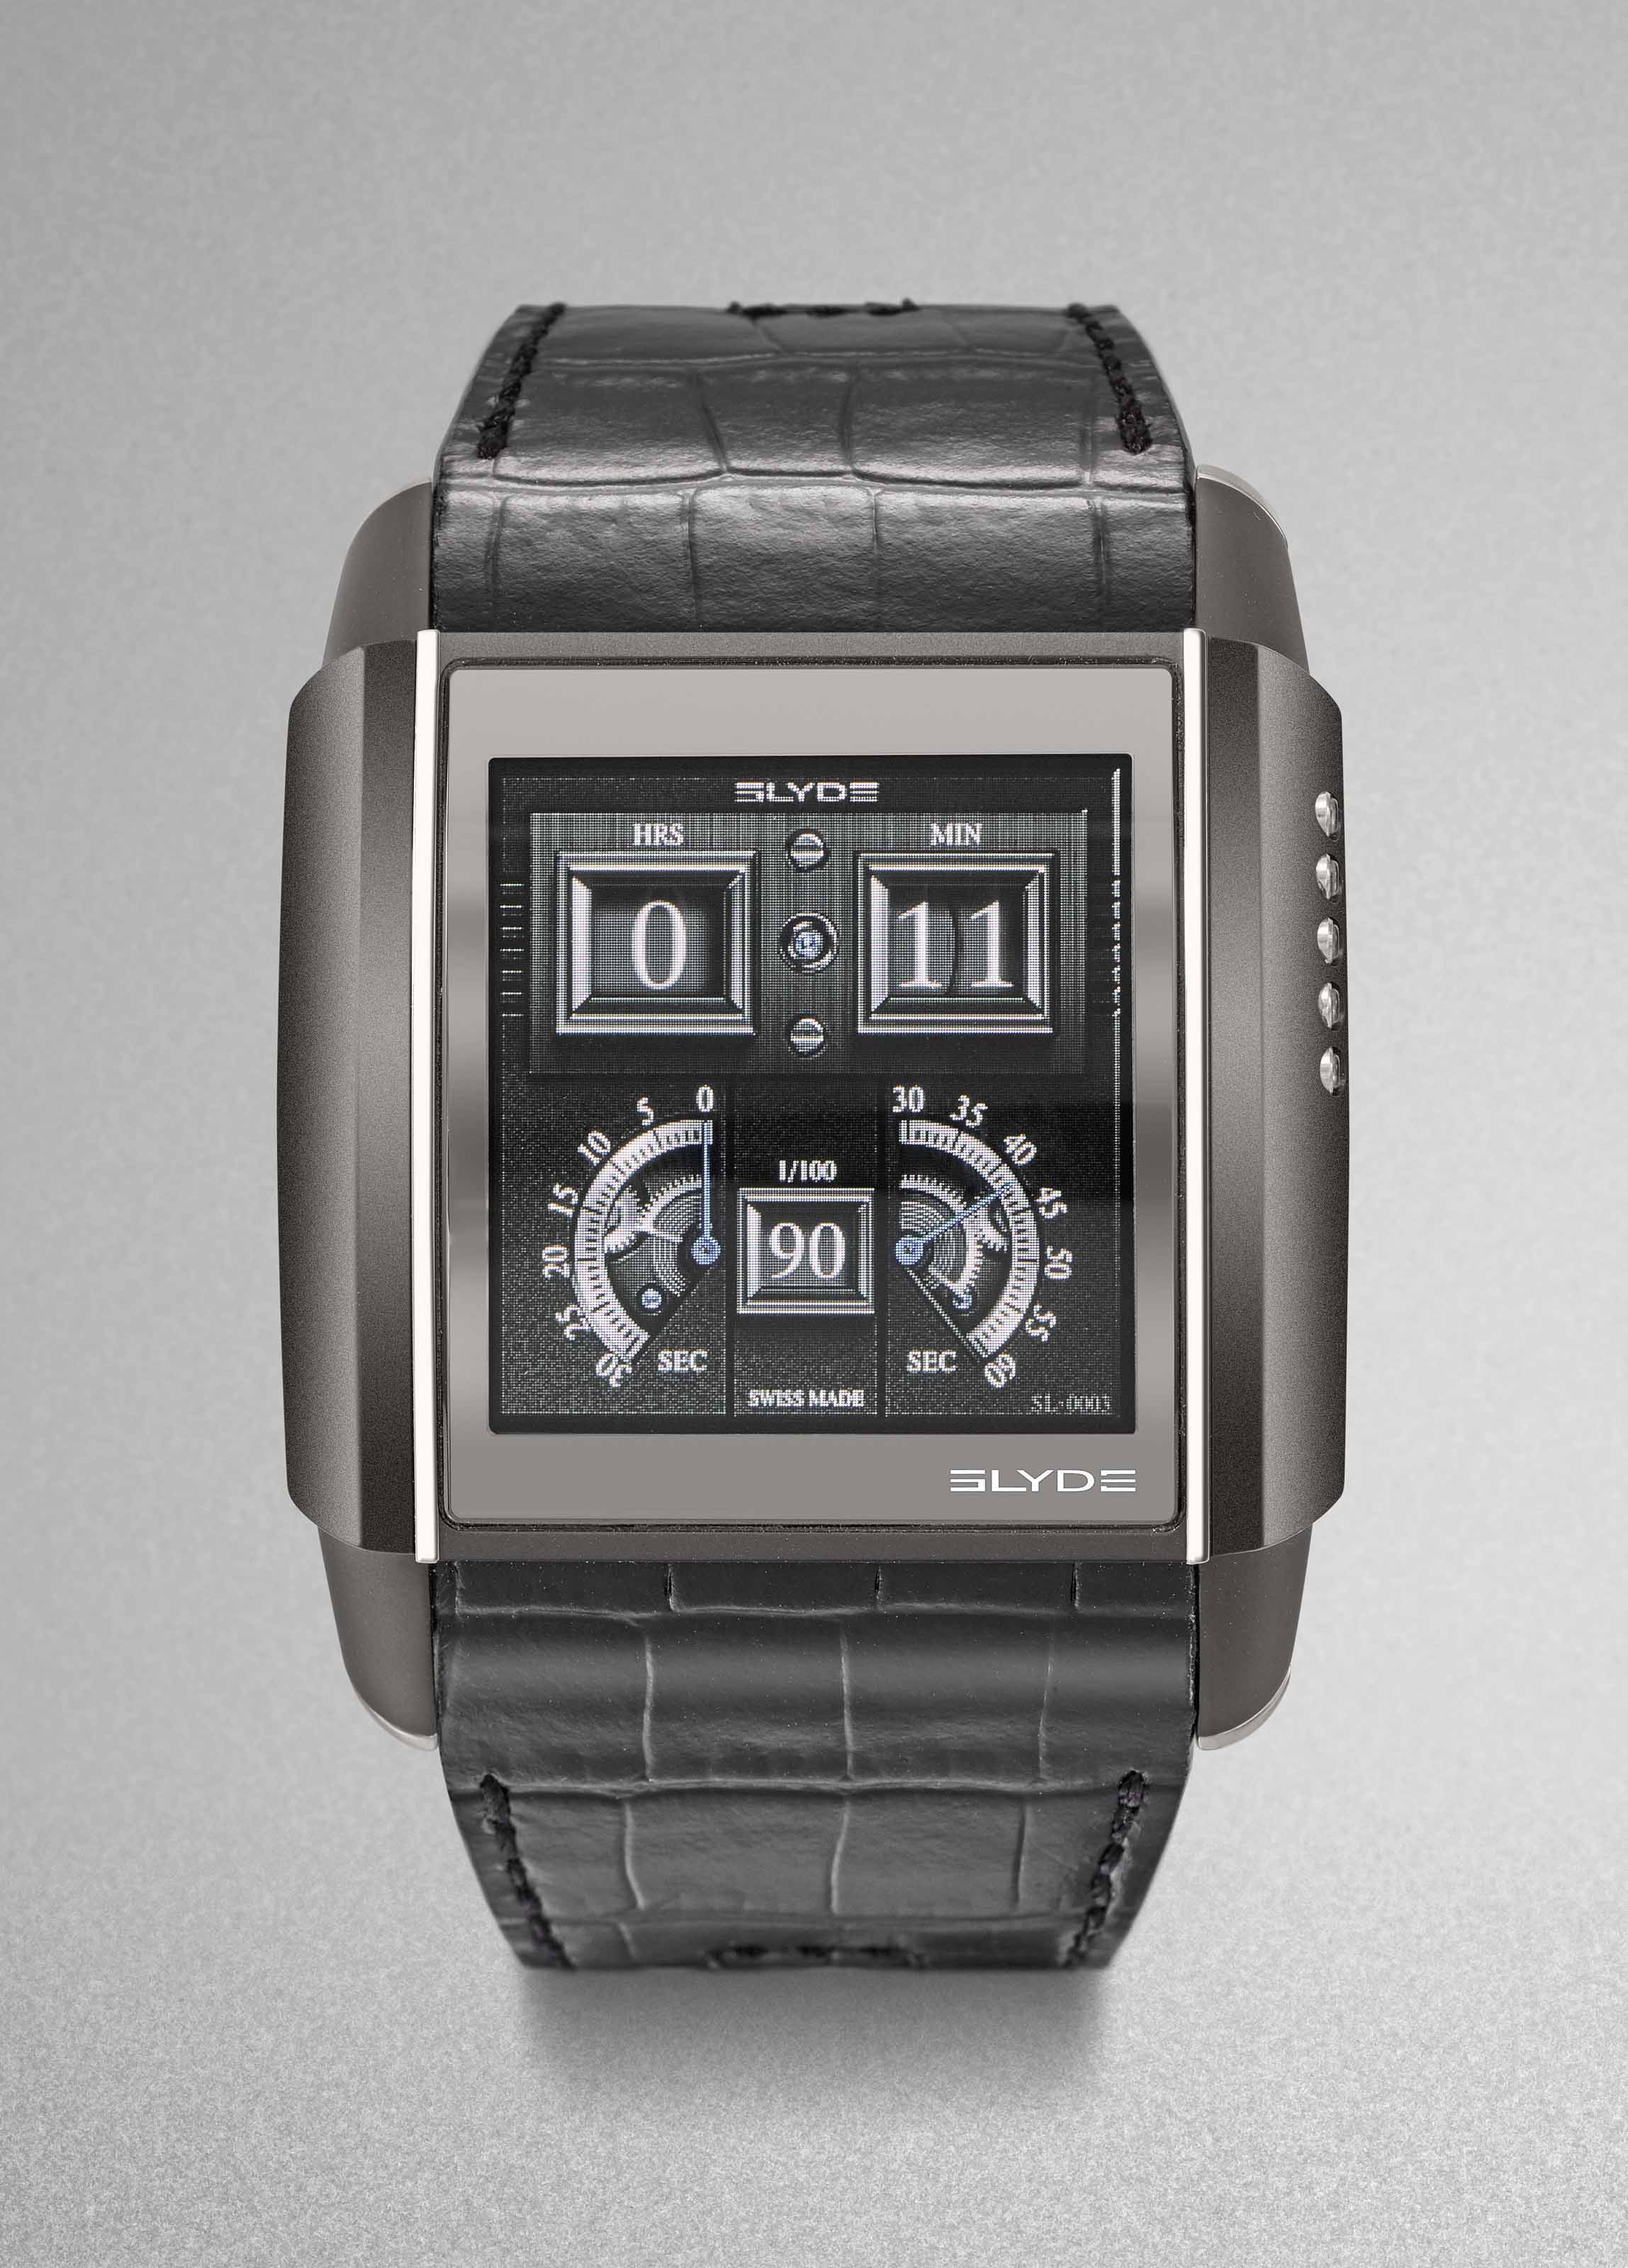 HD3. An innovative oversized black PVD-coated rectangular digital touchscreen electronic watch with power reserve indication, original certificate and box